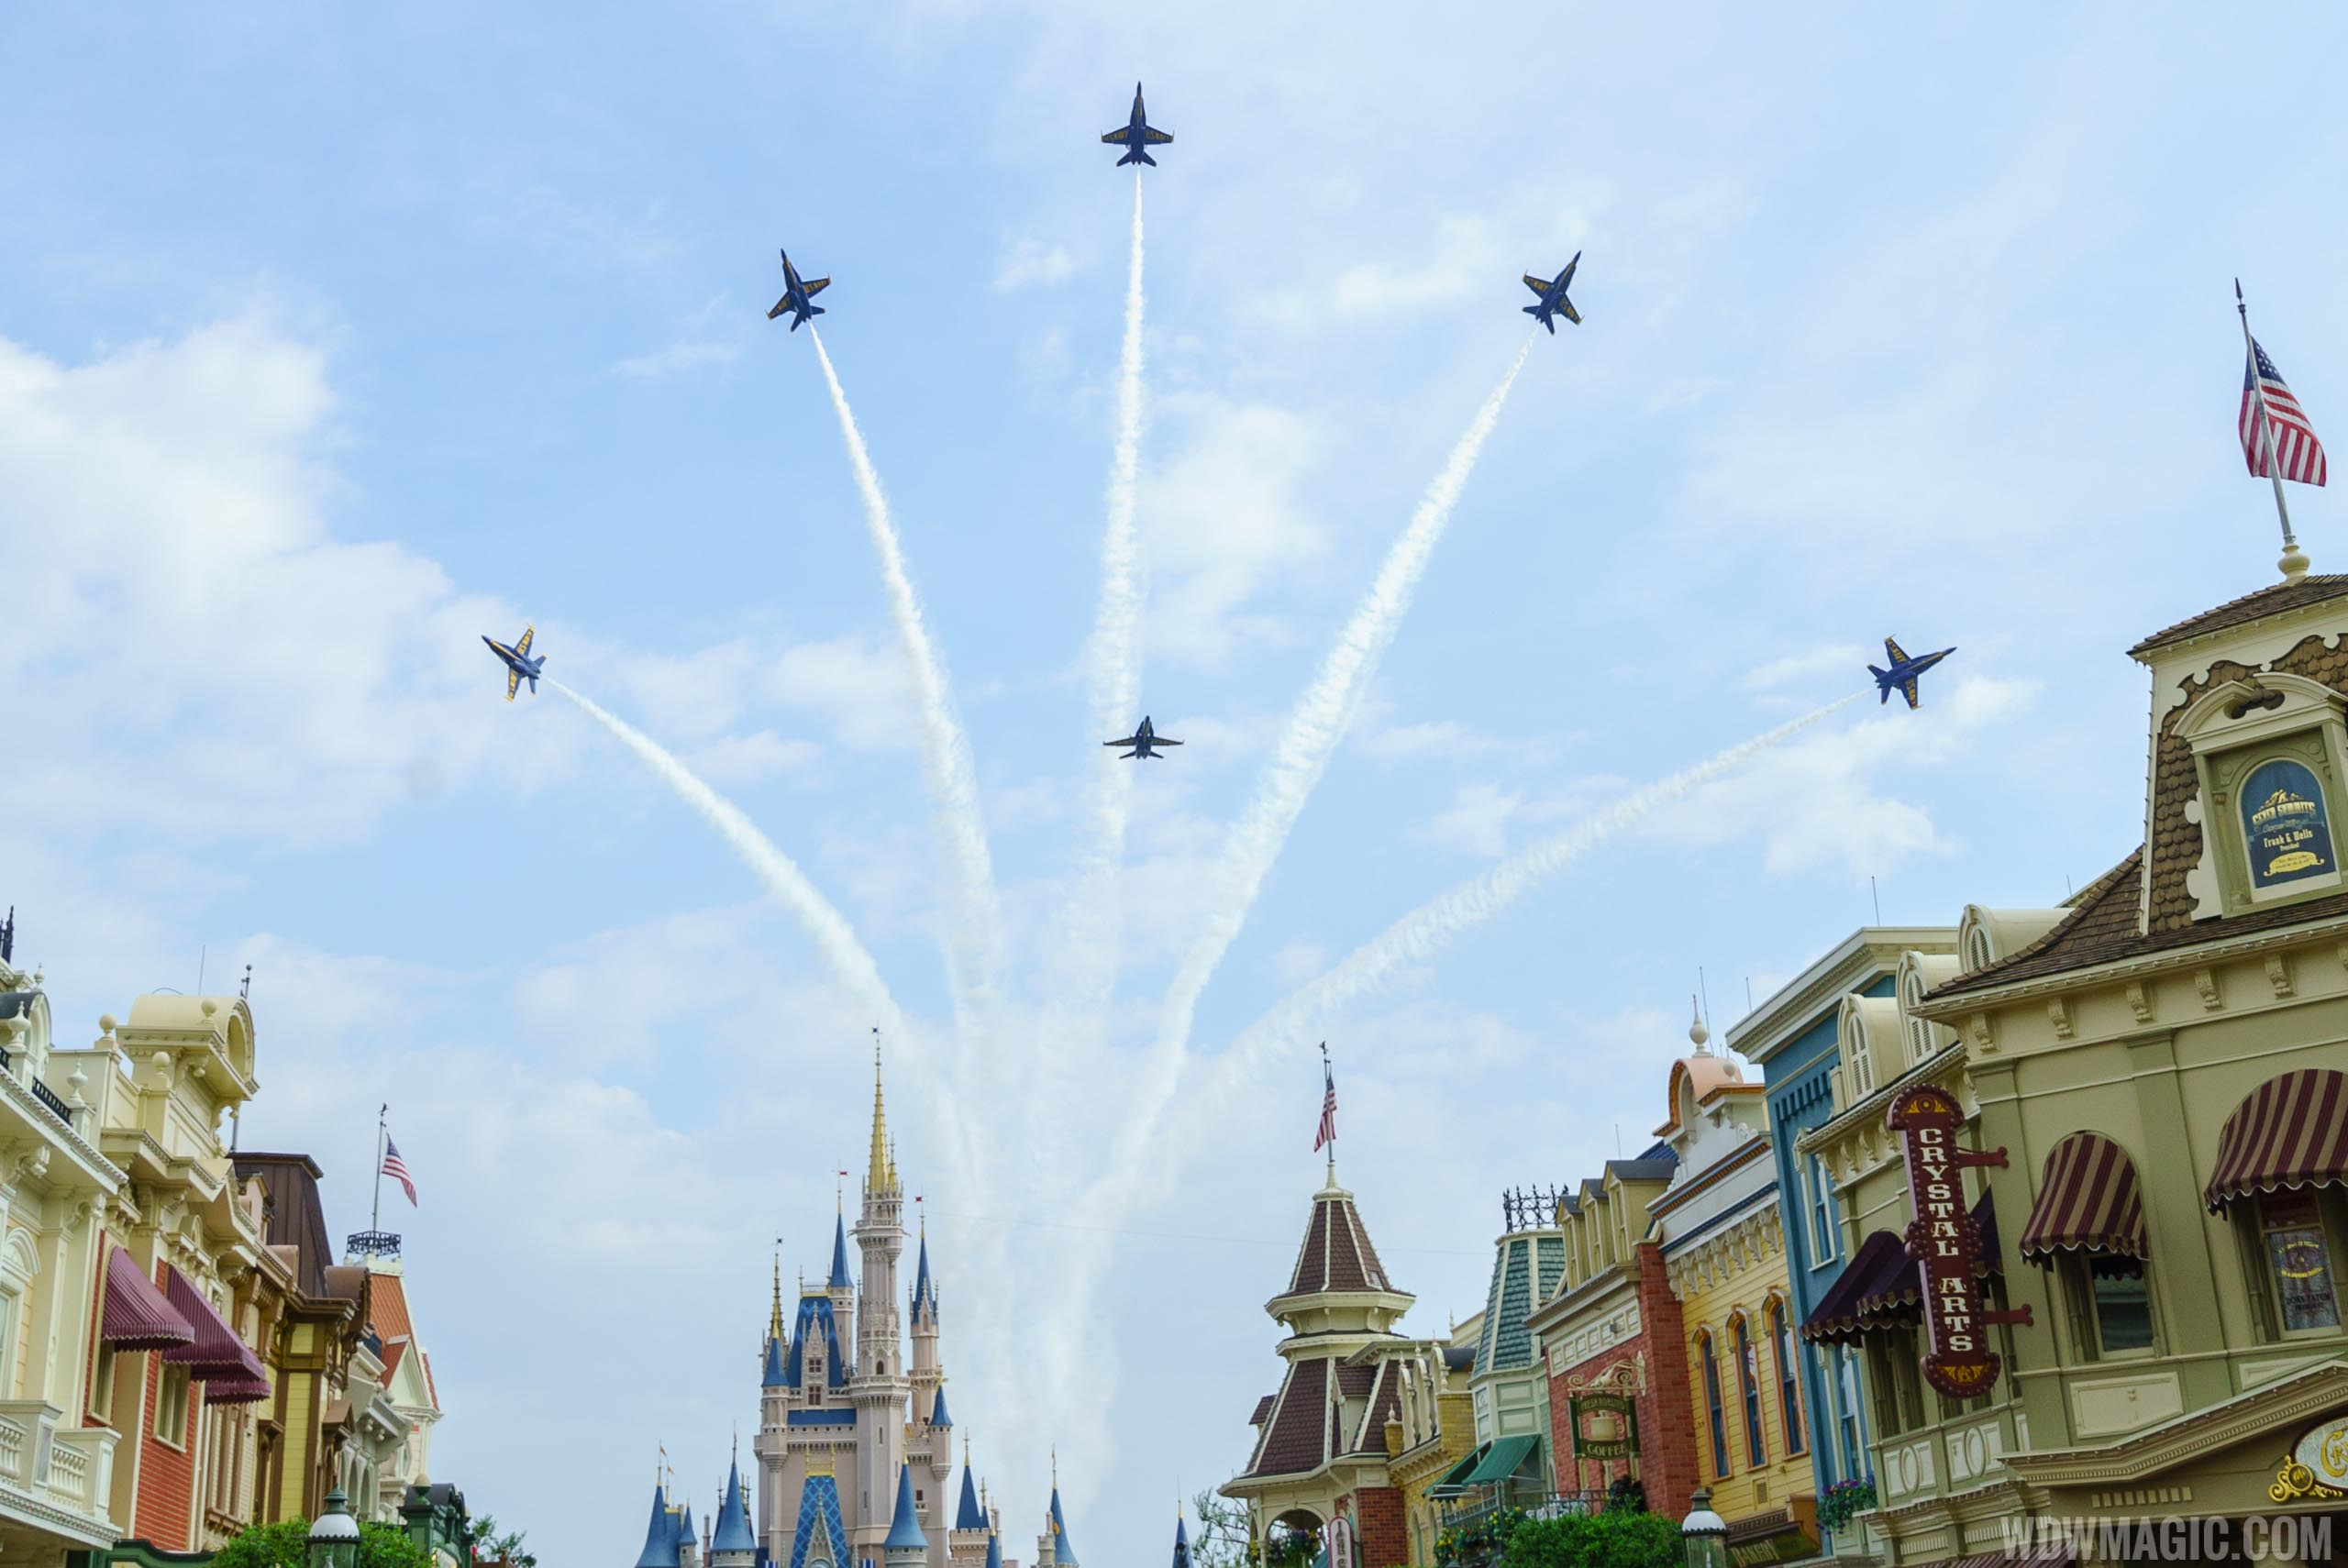 Blue Angels Delta Break over Cinderella Castle